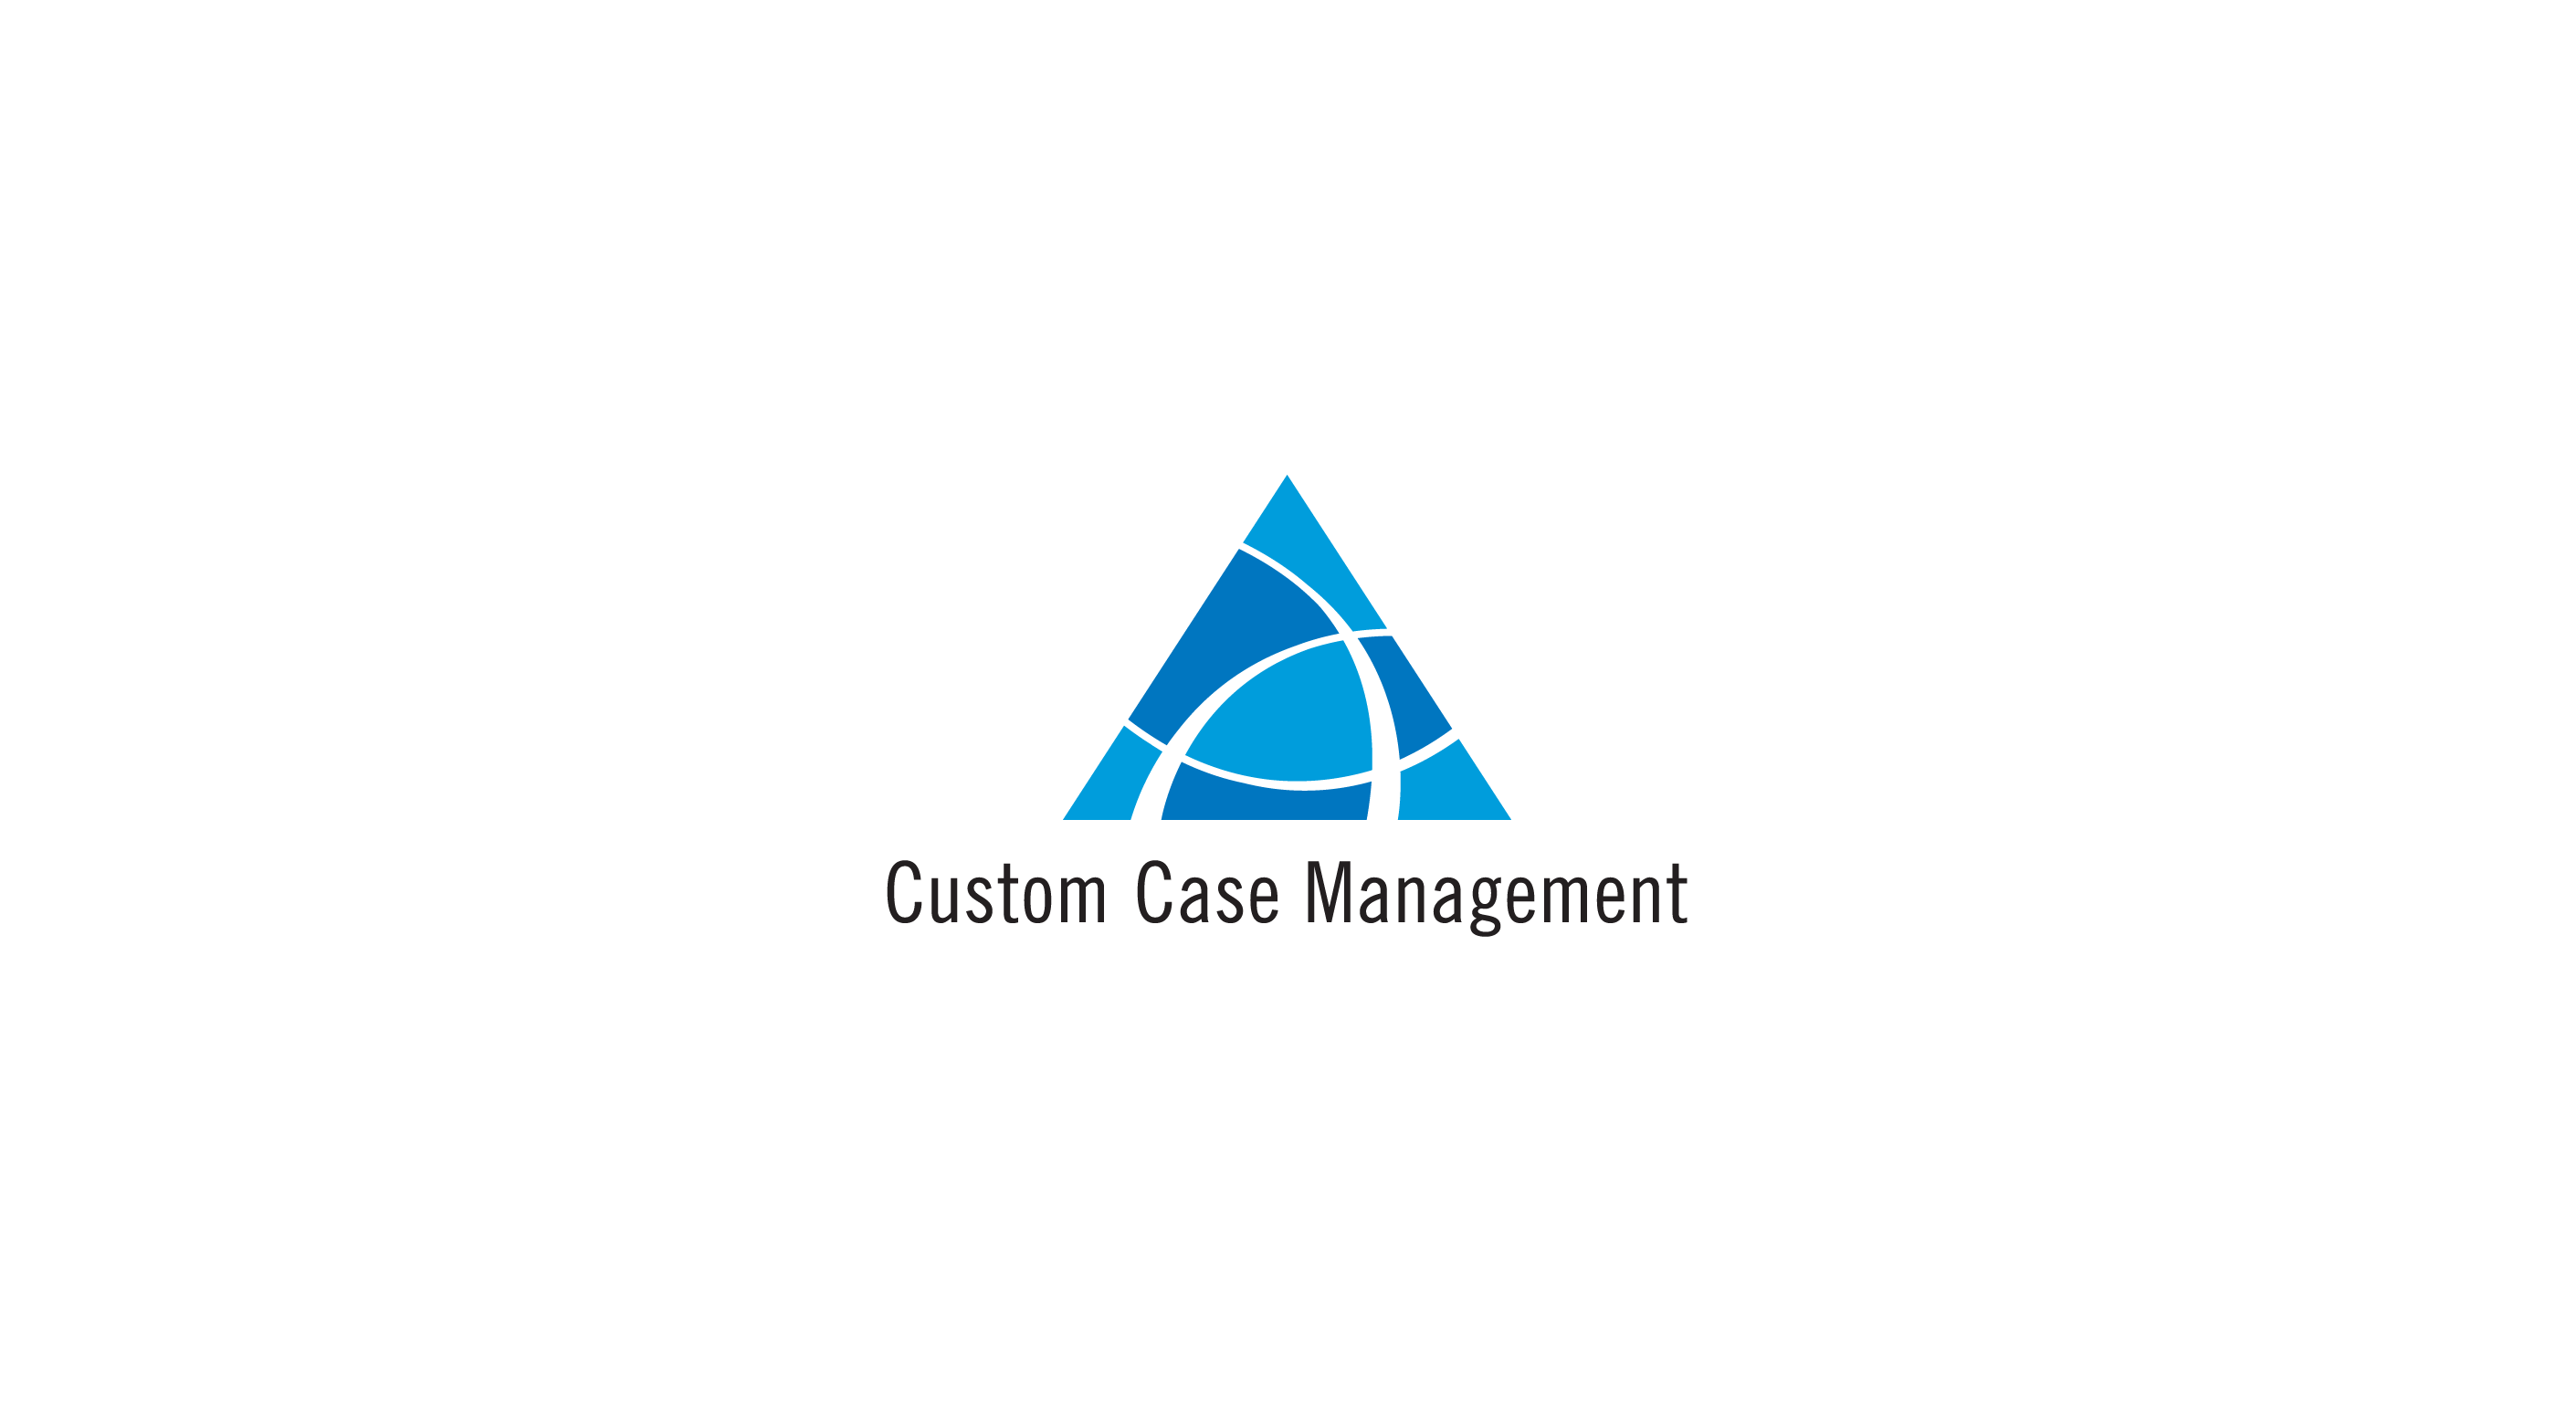 Custom Case Management